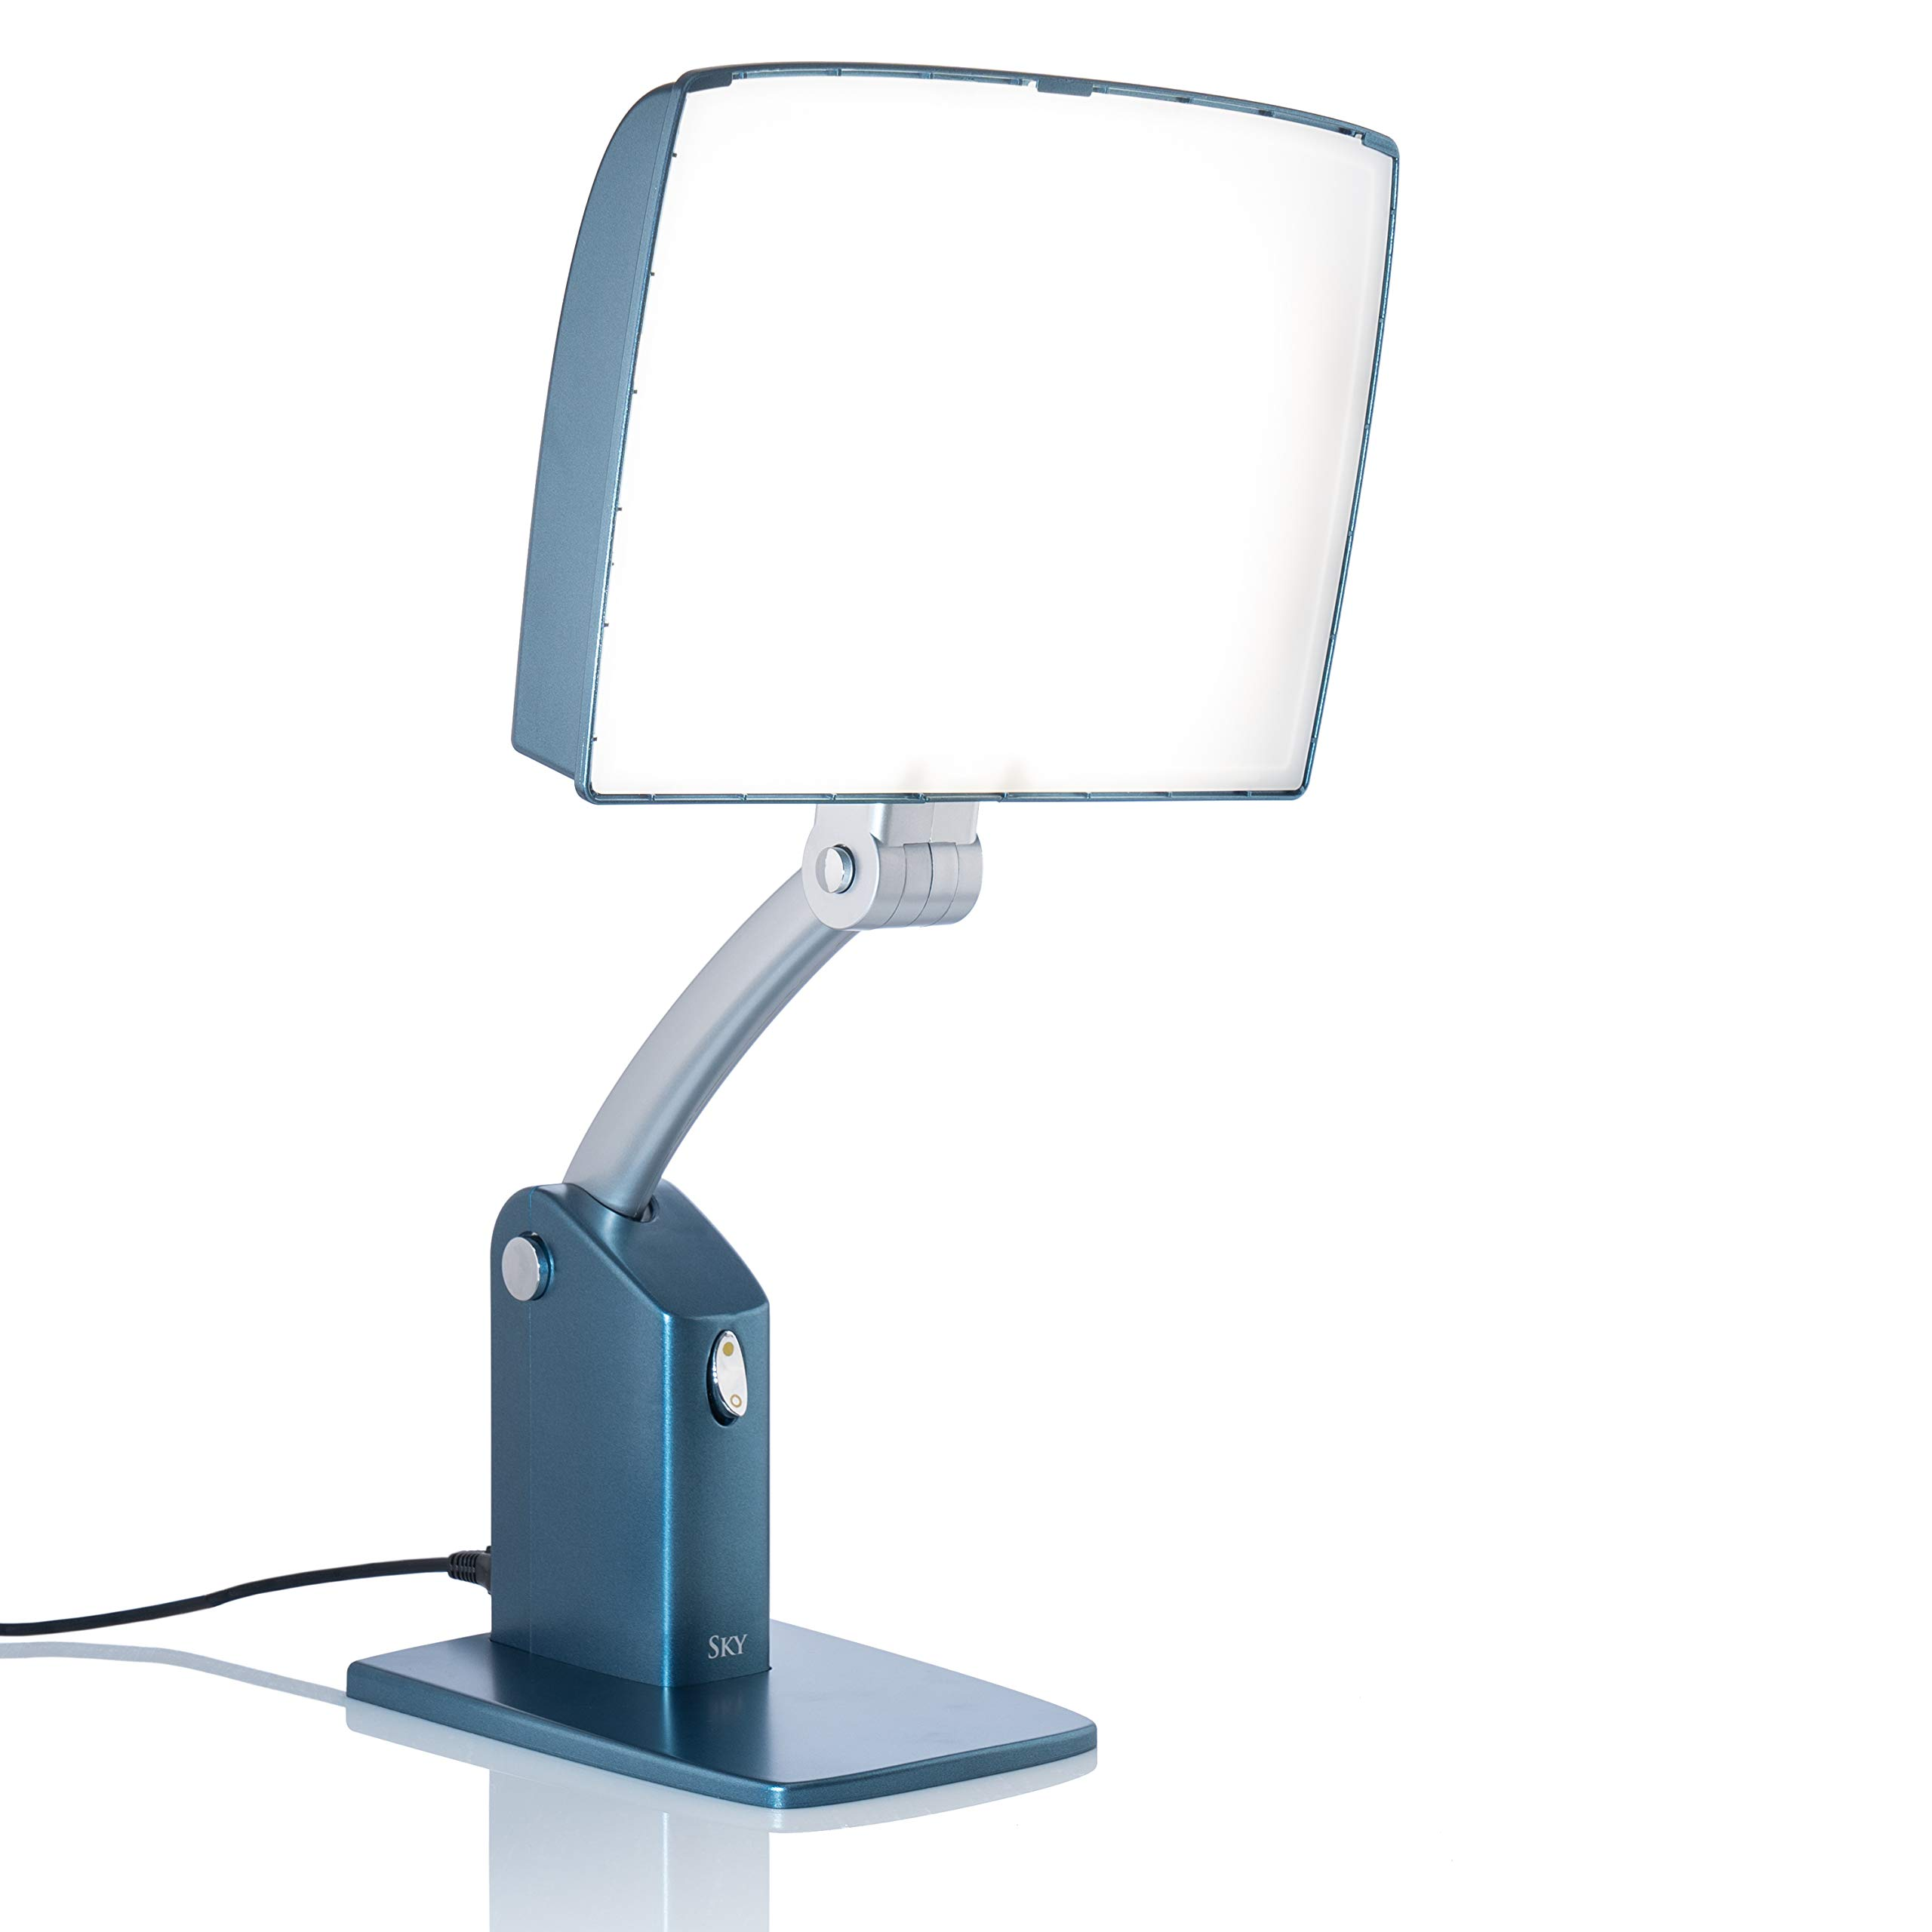 Carex Day-Light Sky Bright Light Therapy Lamp - 10,000 LUX - Sun Lamp To Combat Winter Blues and To Increase Your Energy by Carex Health Brands